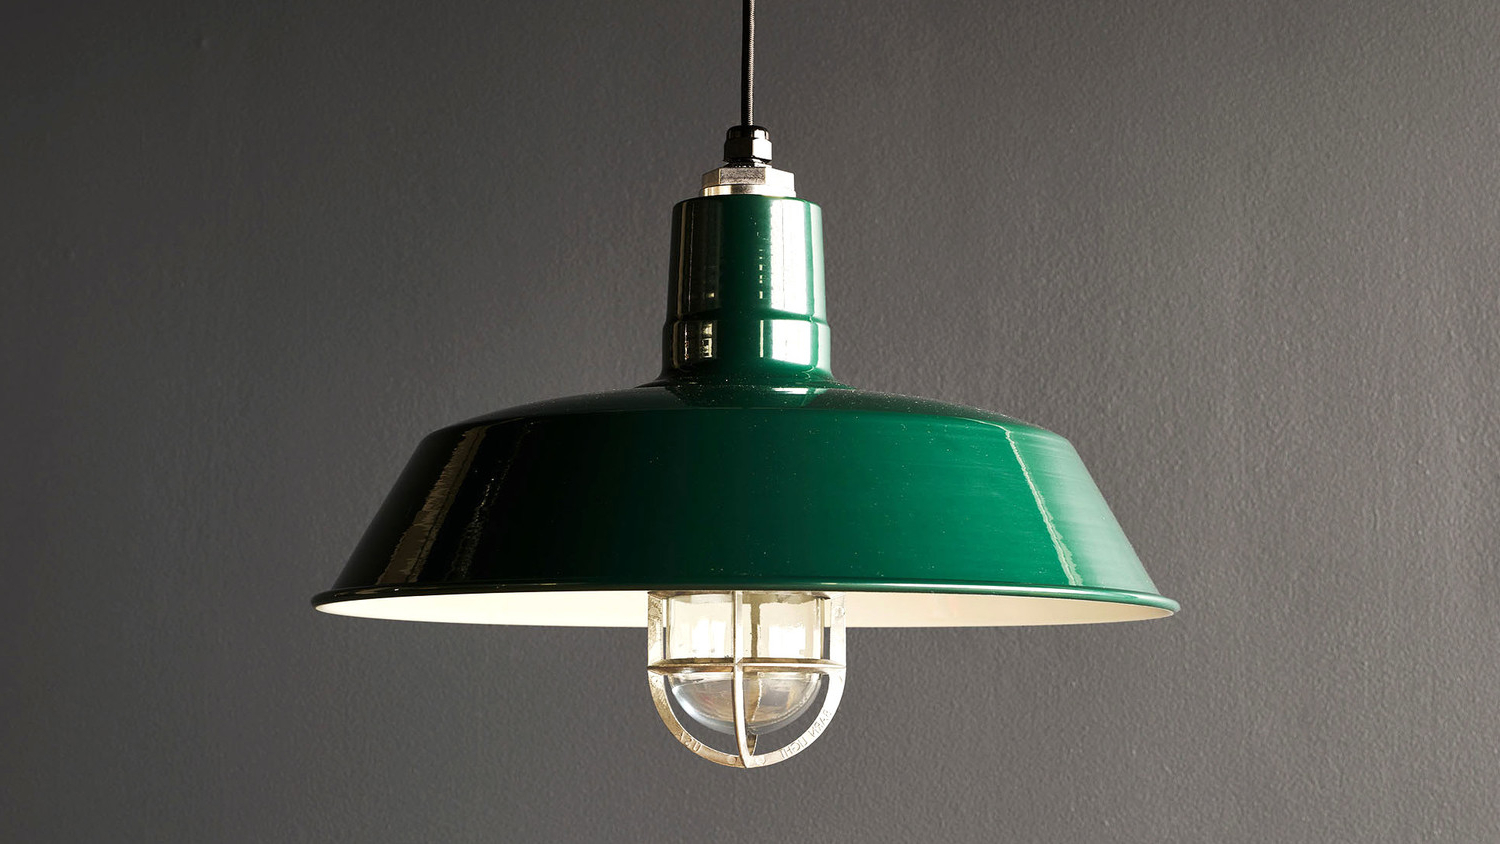 Hurst 1 Light Single Cylinder Pendants Inside Most Up To Date Shopping Special: Willa Arlo Interiors Hurst 1 Light Single (View 12 of 25)